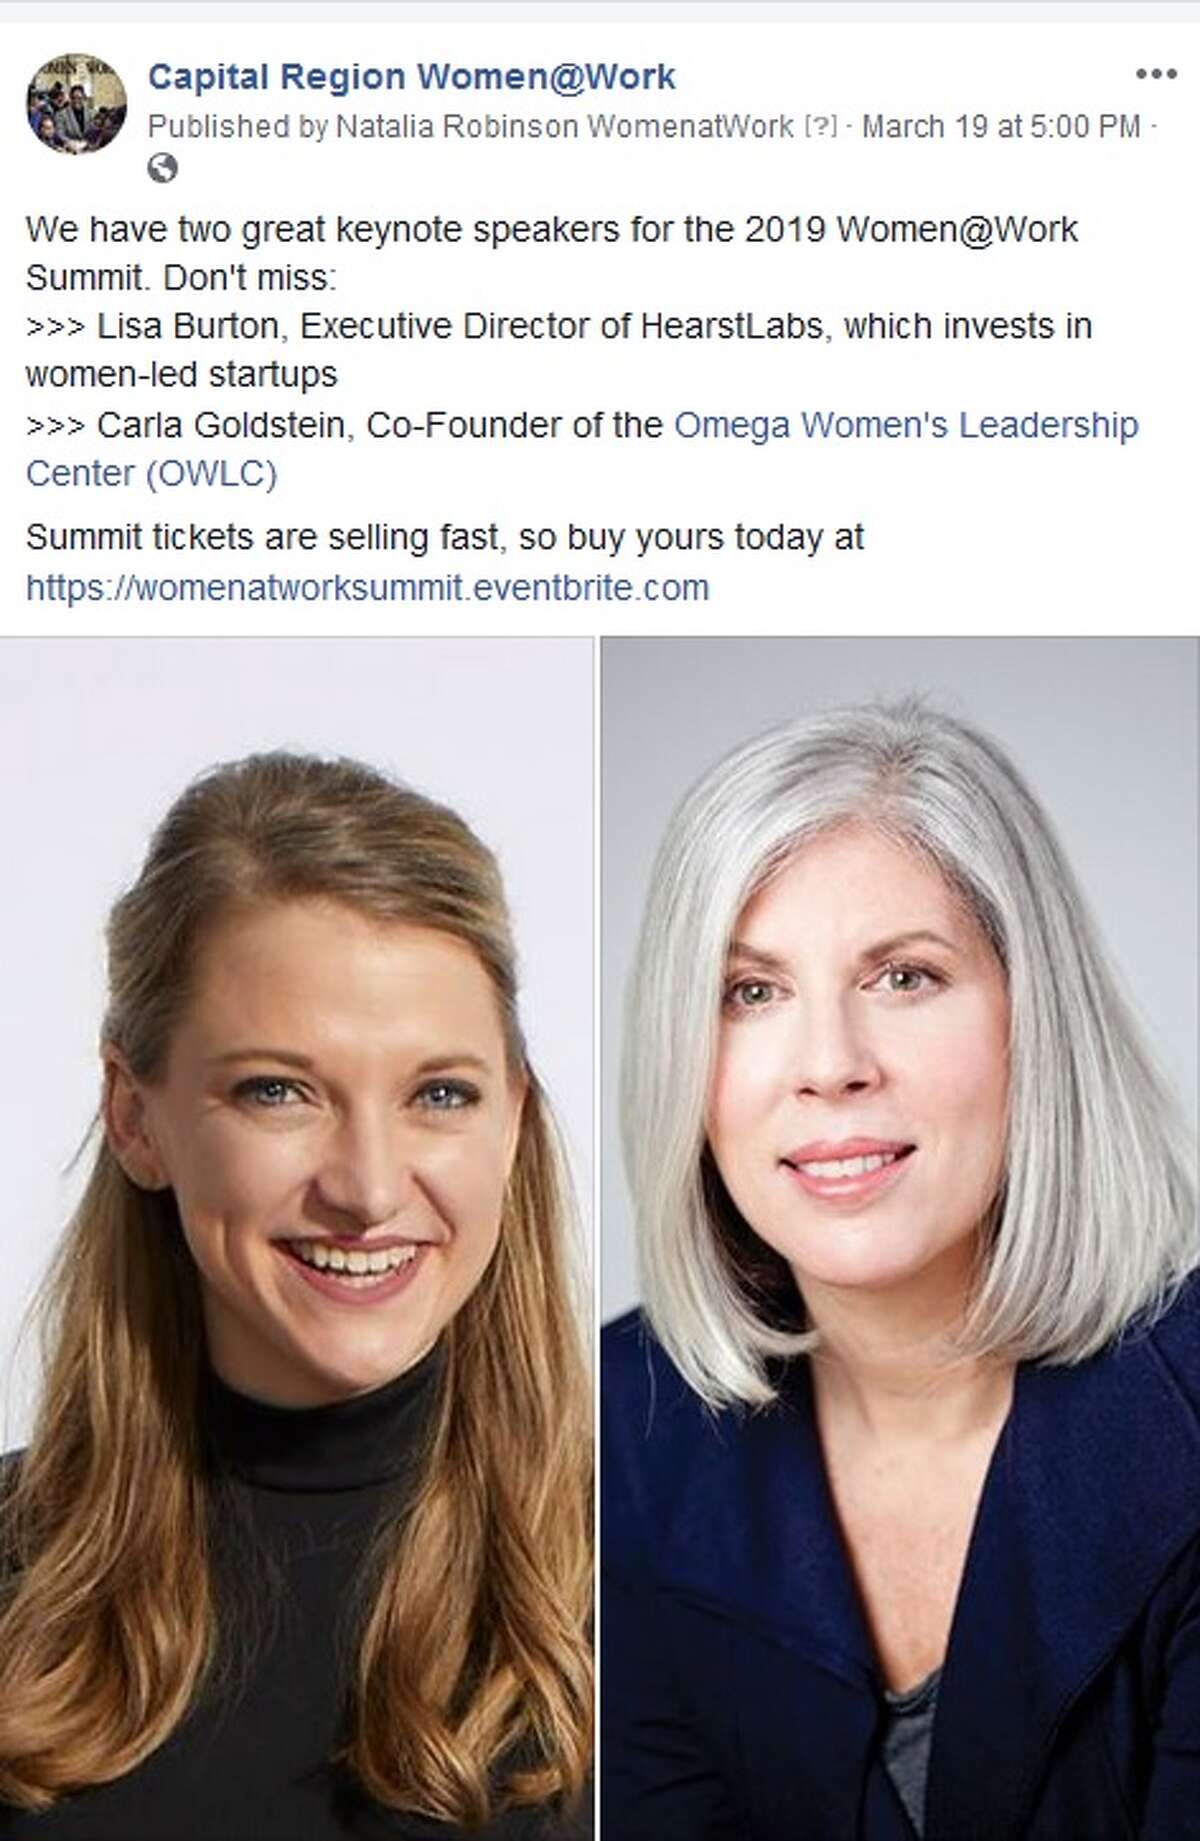 A Facebook post on our official page touting our keynote speakers for the June 5 Summit. (Screenshot)